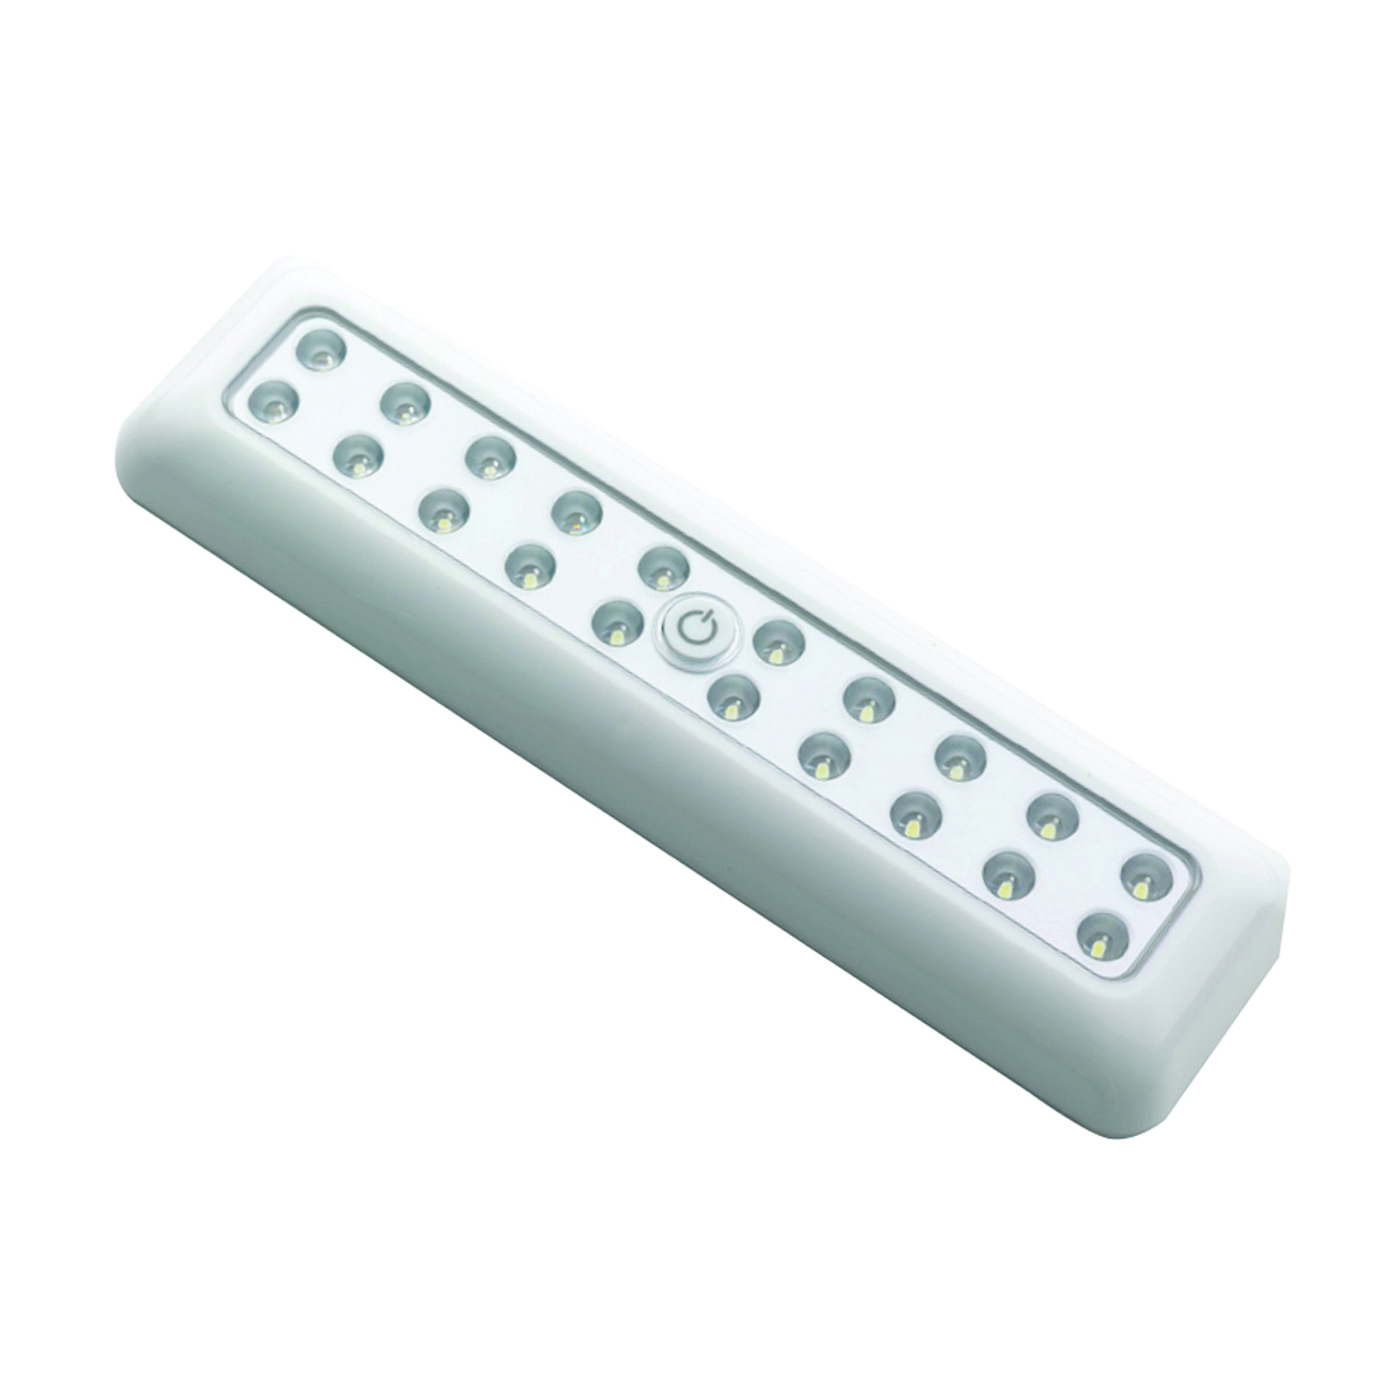 Picture of Fulcrum 30017-308 Portable Tap Light, AAA Battery, 20-Lamp, LED Lamp, 80 Lumens, 5500 K Color Temp, White